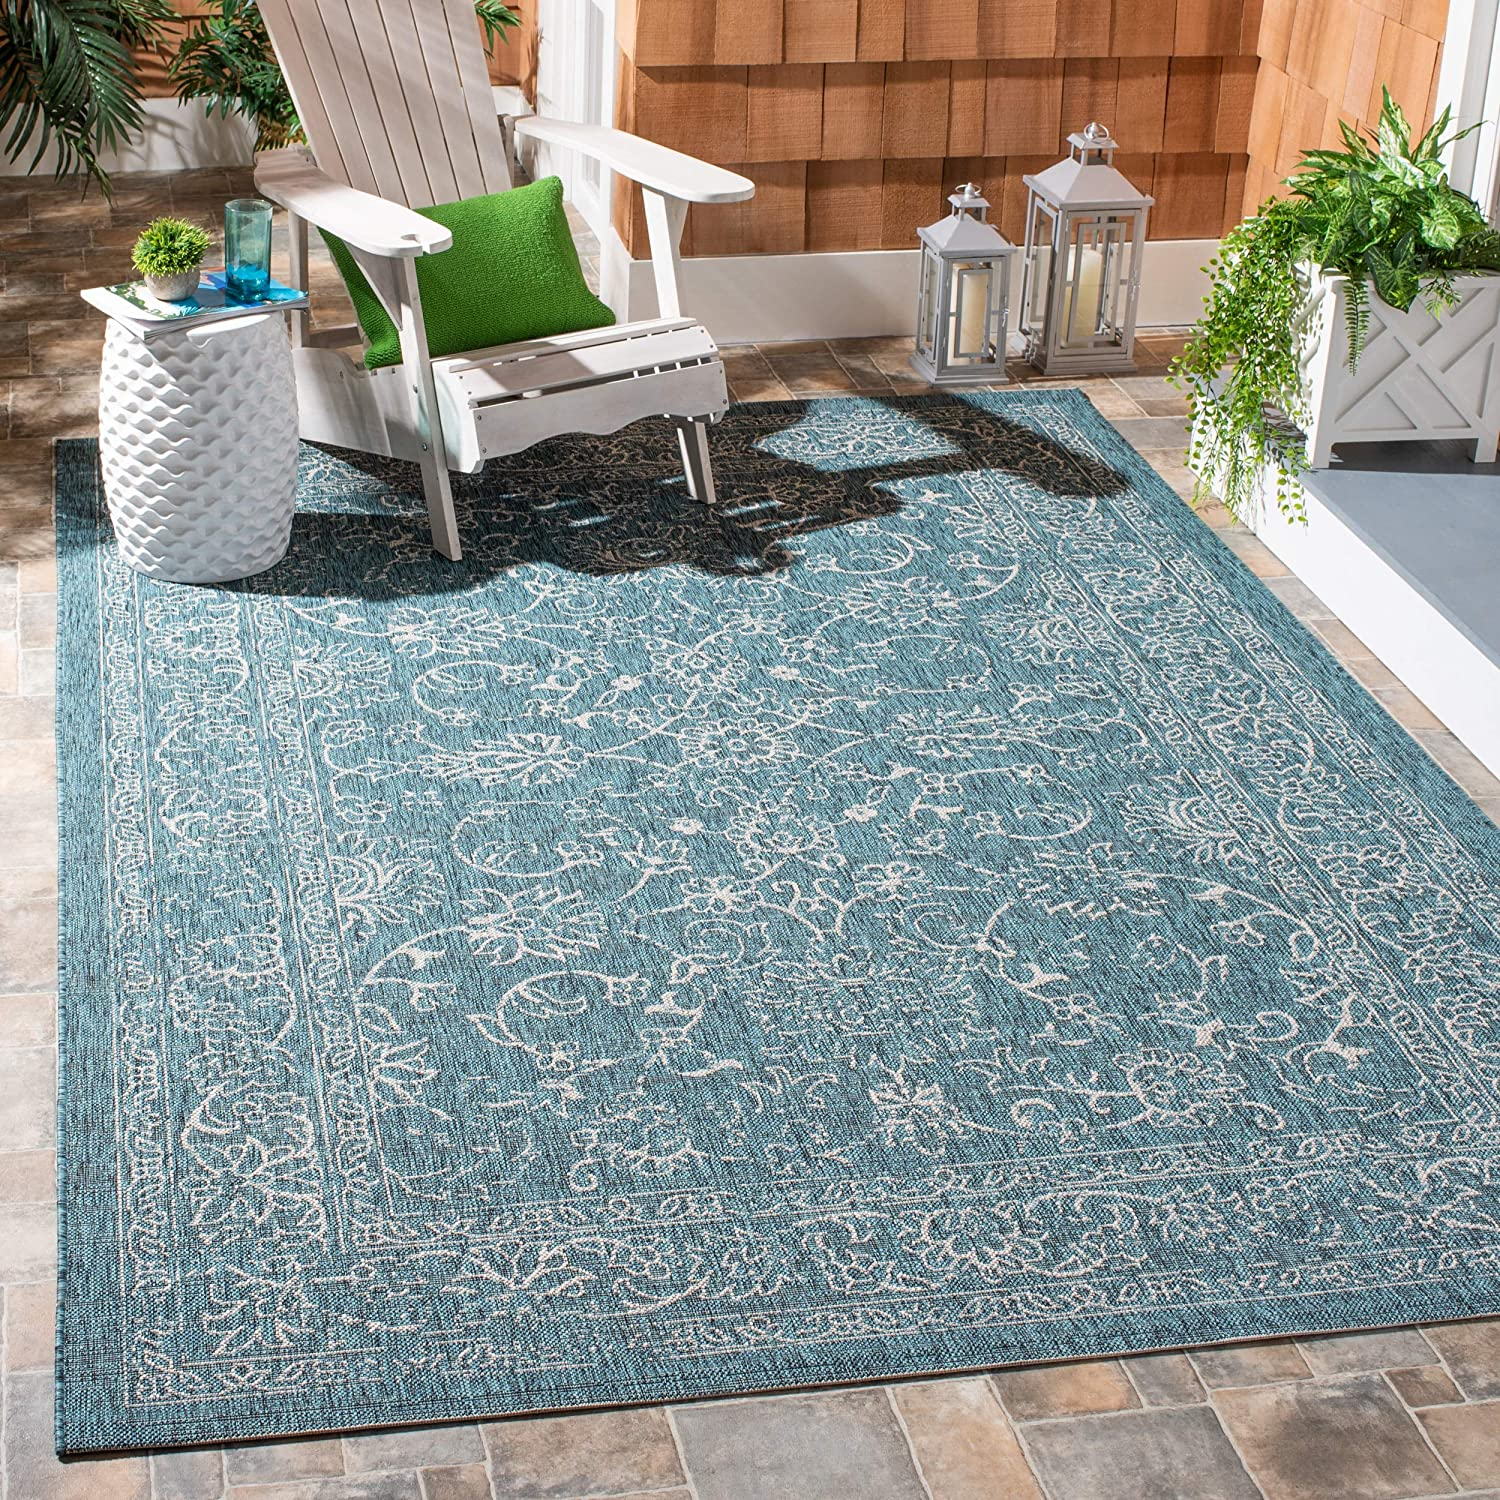 Safavieh Courtyard Turquoise Outdoor Area Rug